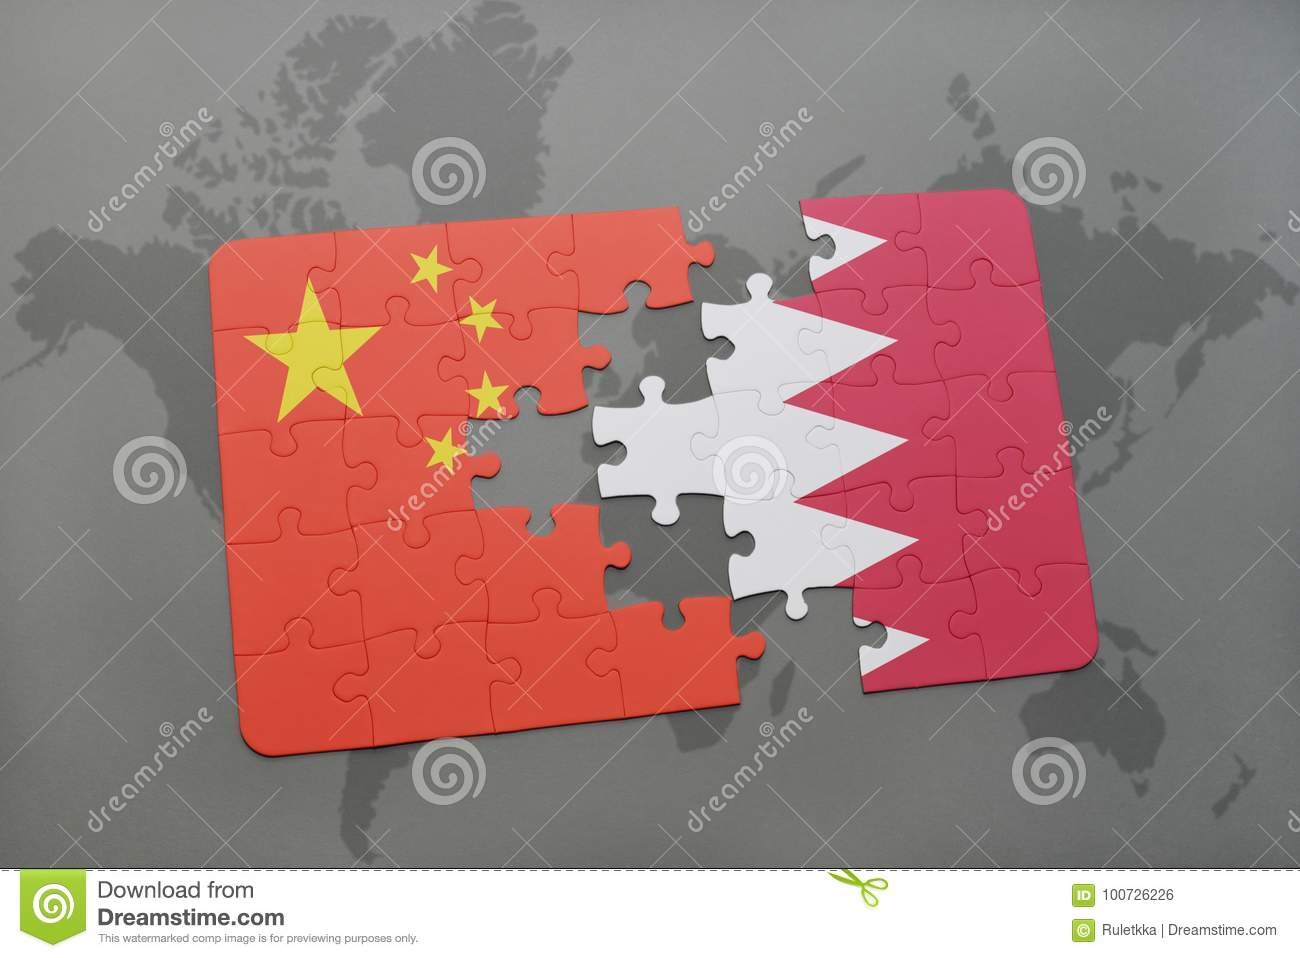 Puzzle with the national flag of china and bahrain on a world map puzzle with the national flag of china and bahrain on a world map background 3d illustration gumiabroncs Image collections